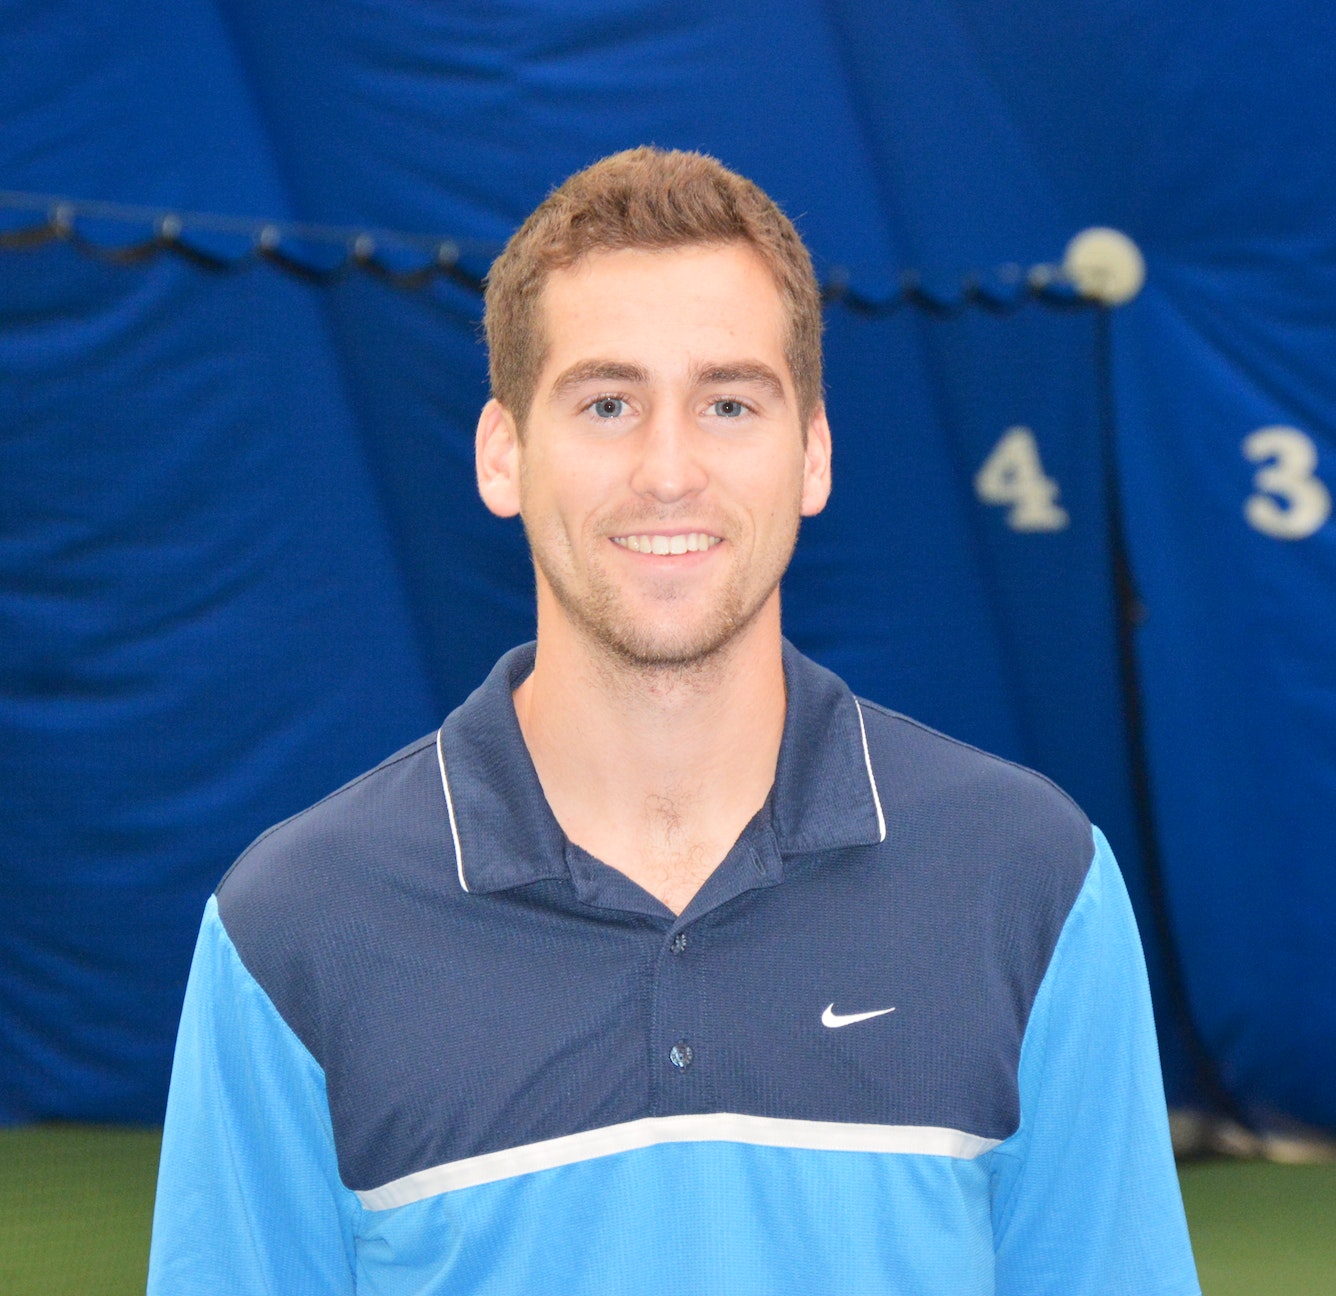 Will W. teaches tennis lessons in San Jose , CA